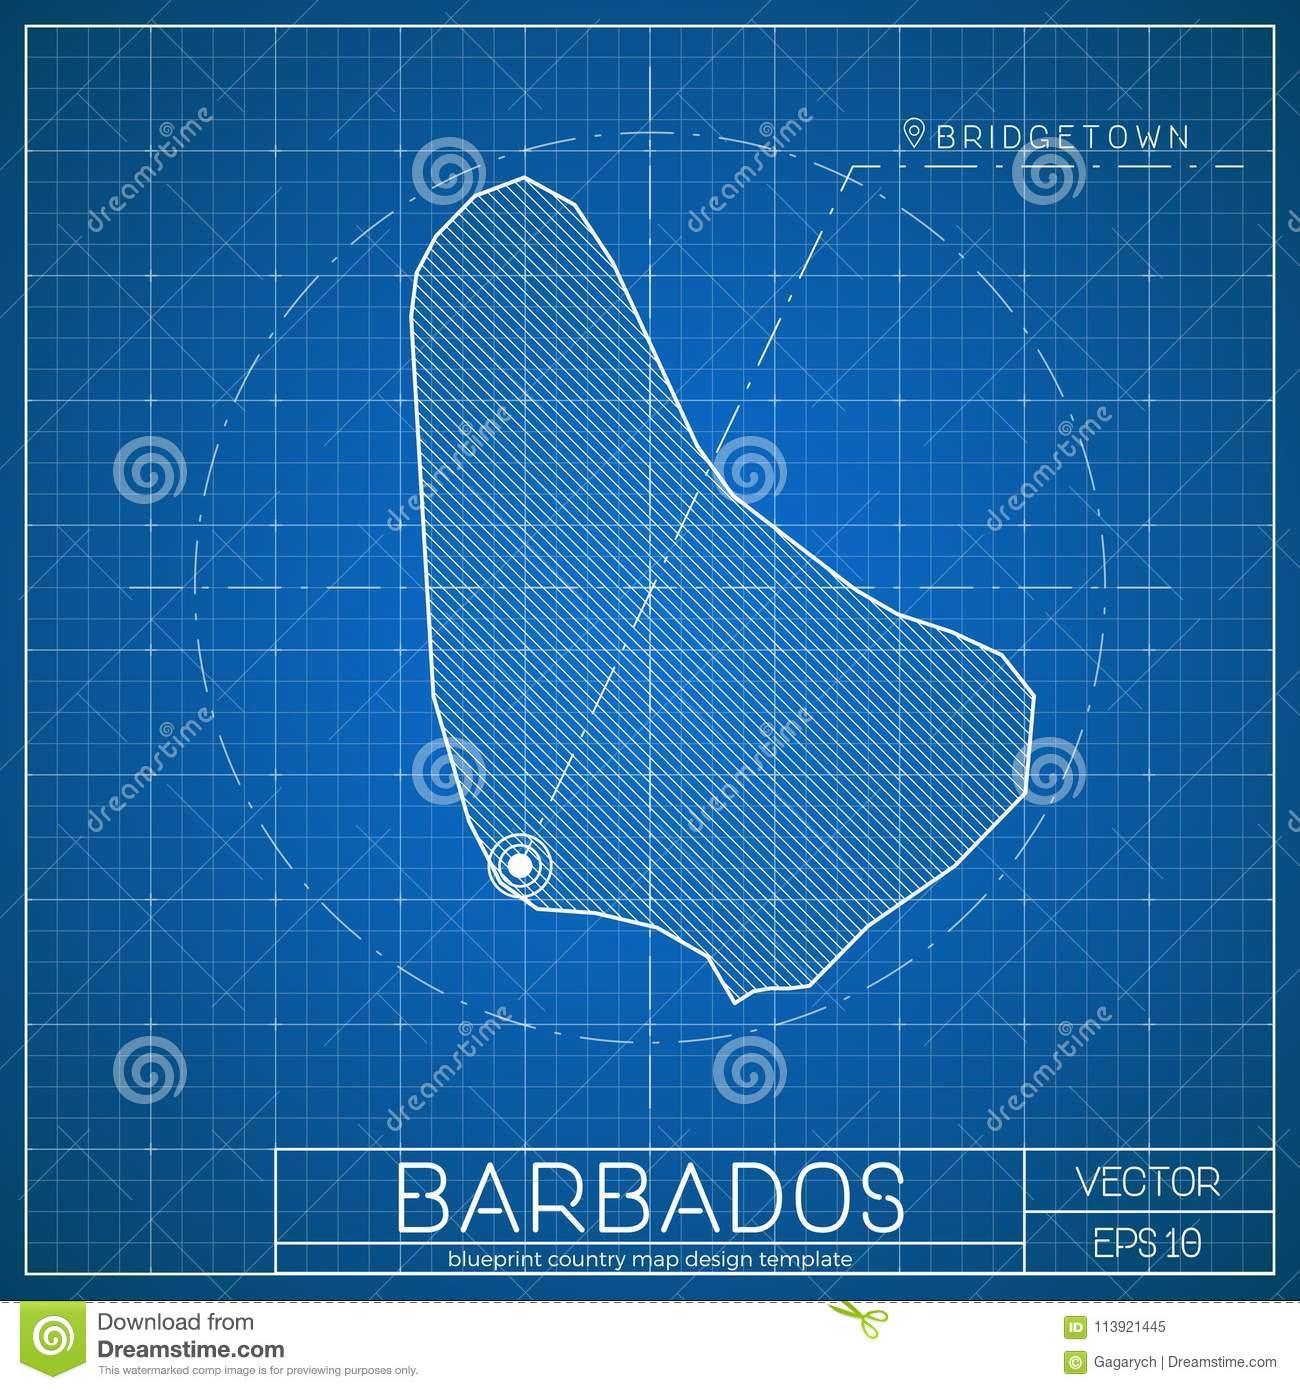 Barbados blueprint map template with capital city stock vector barbados blueprint map template with capital city malvernweather Images